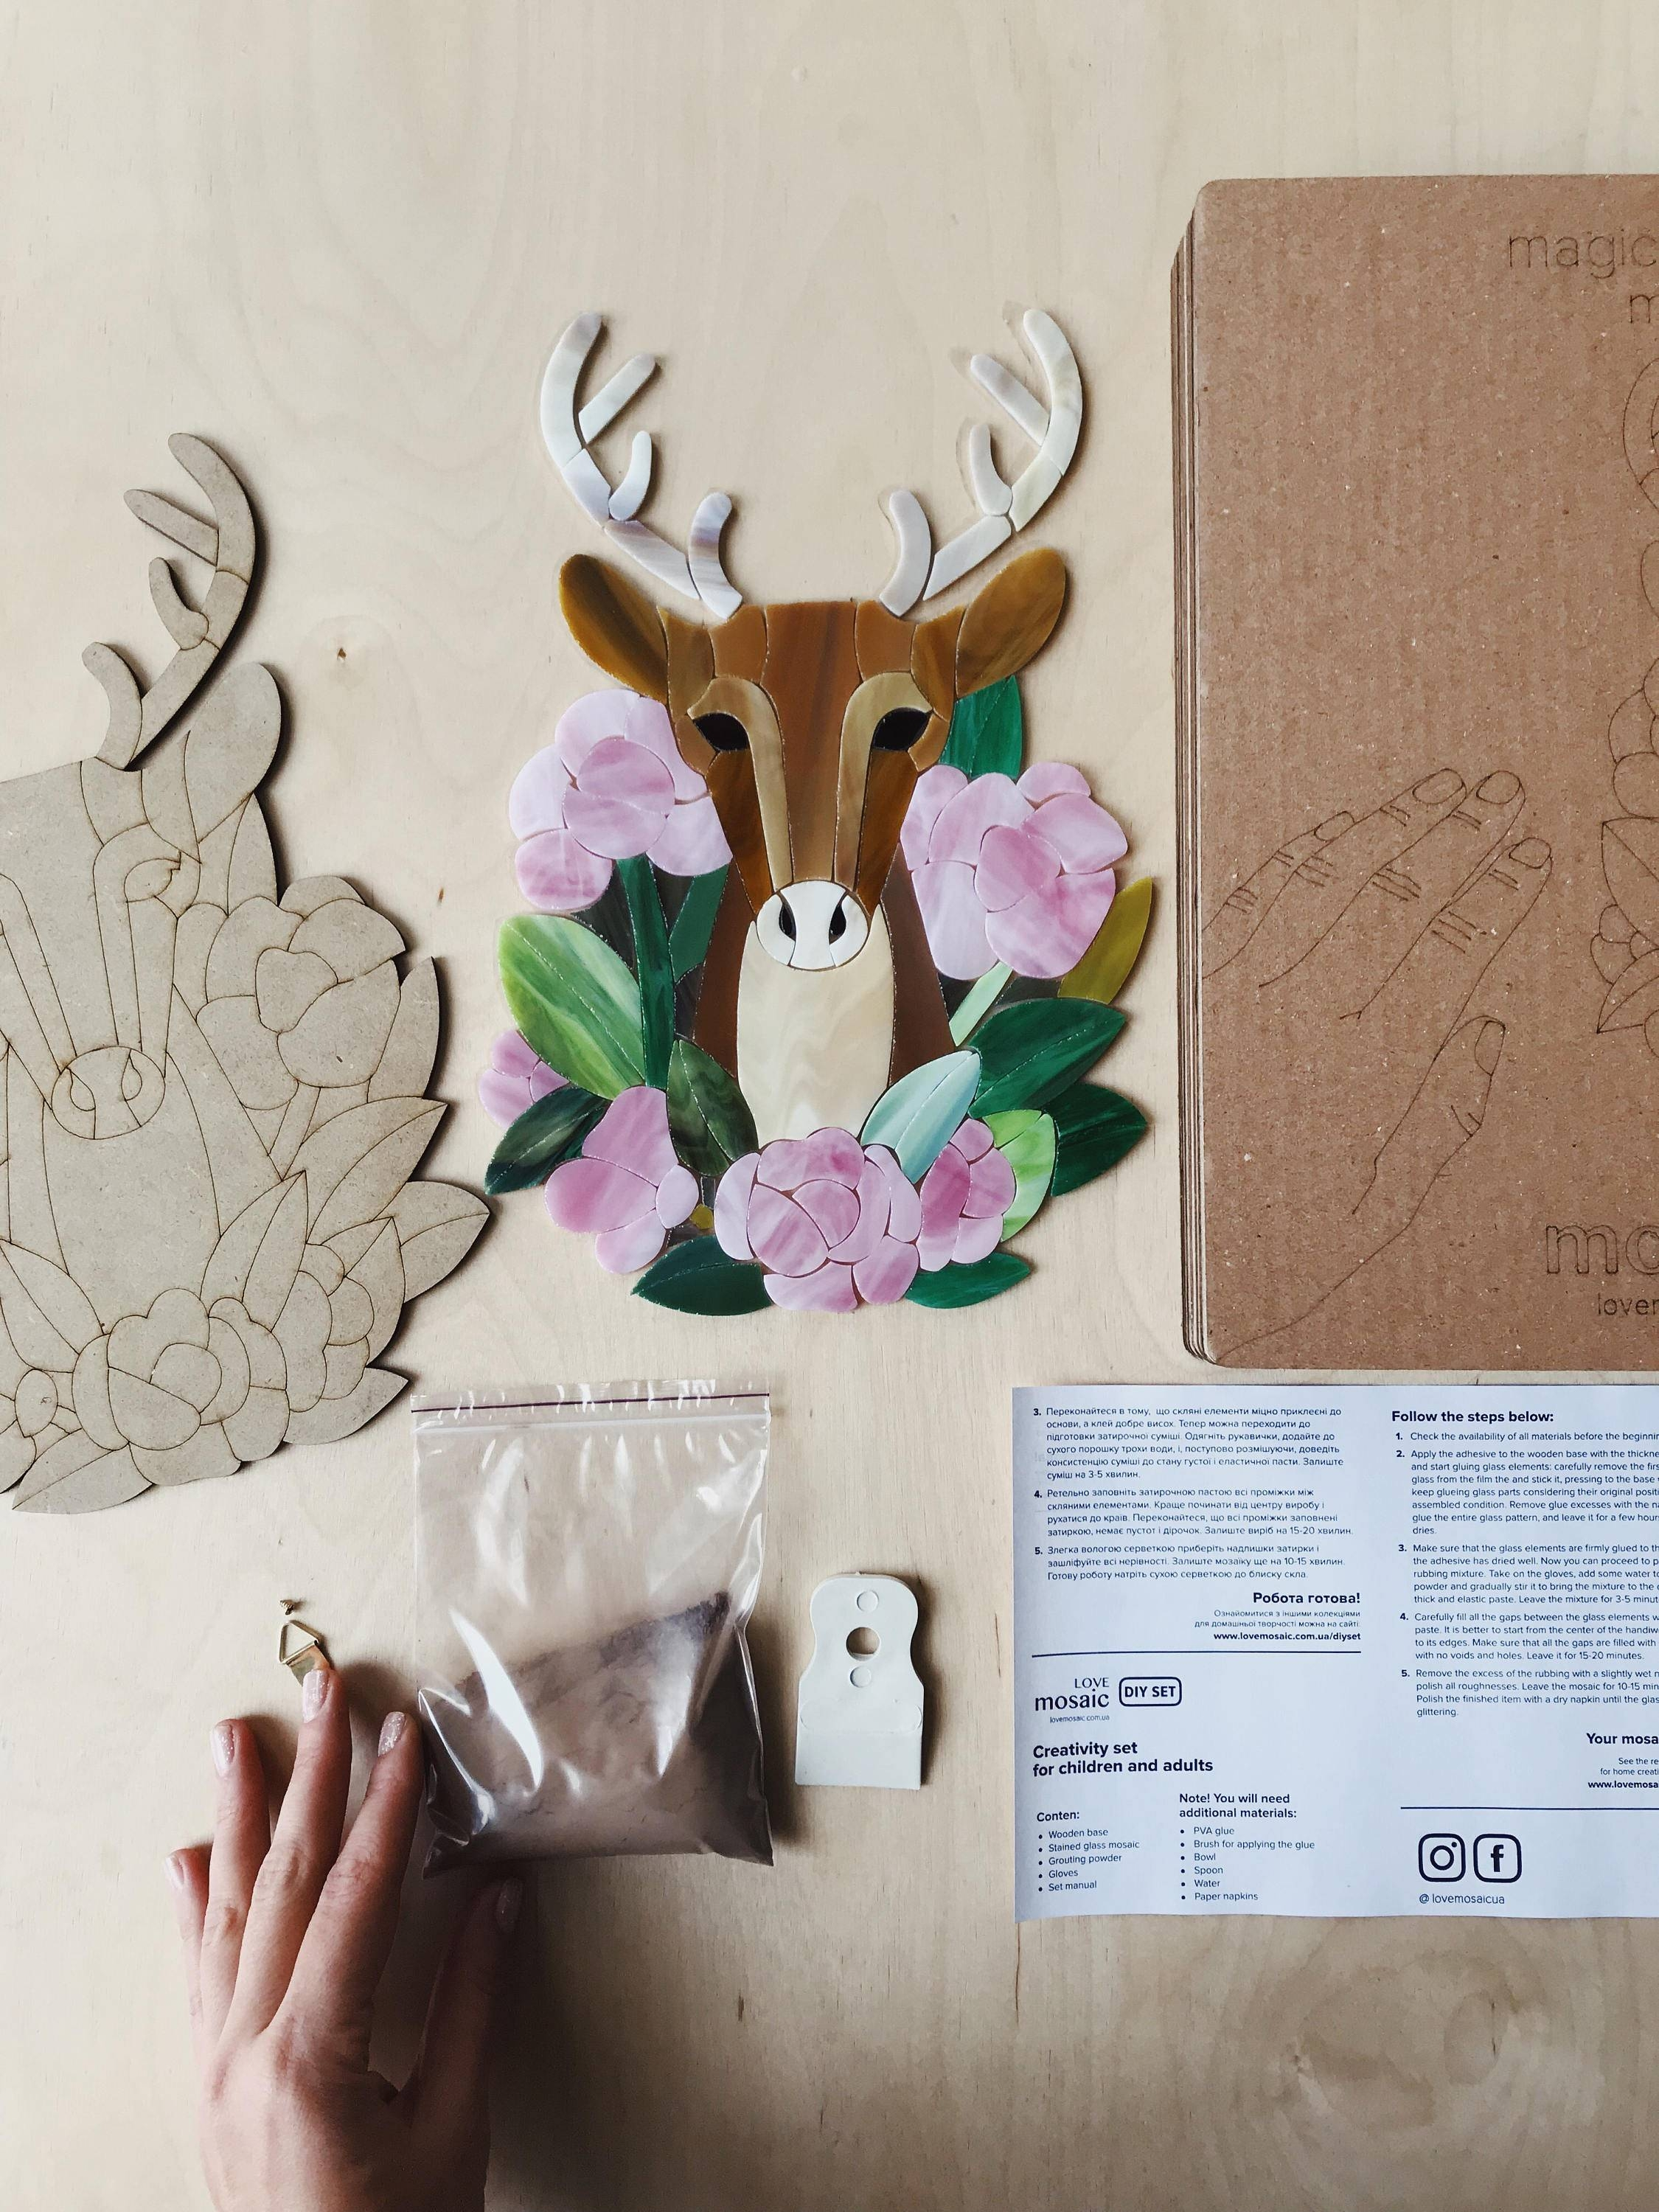 Diy Kit Deer Art Kit Diy Stained Glass Mosaic Wall Art Teacher Intended For Most Popular Mosaic Wall Art Kits (View 19 of 20)